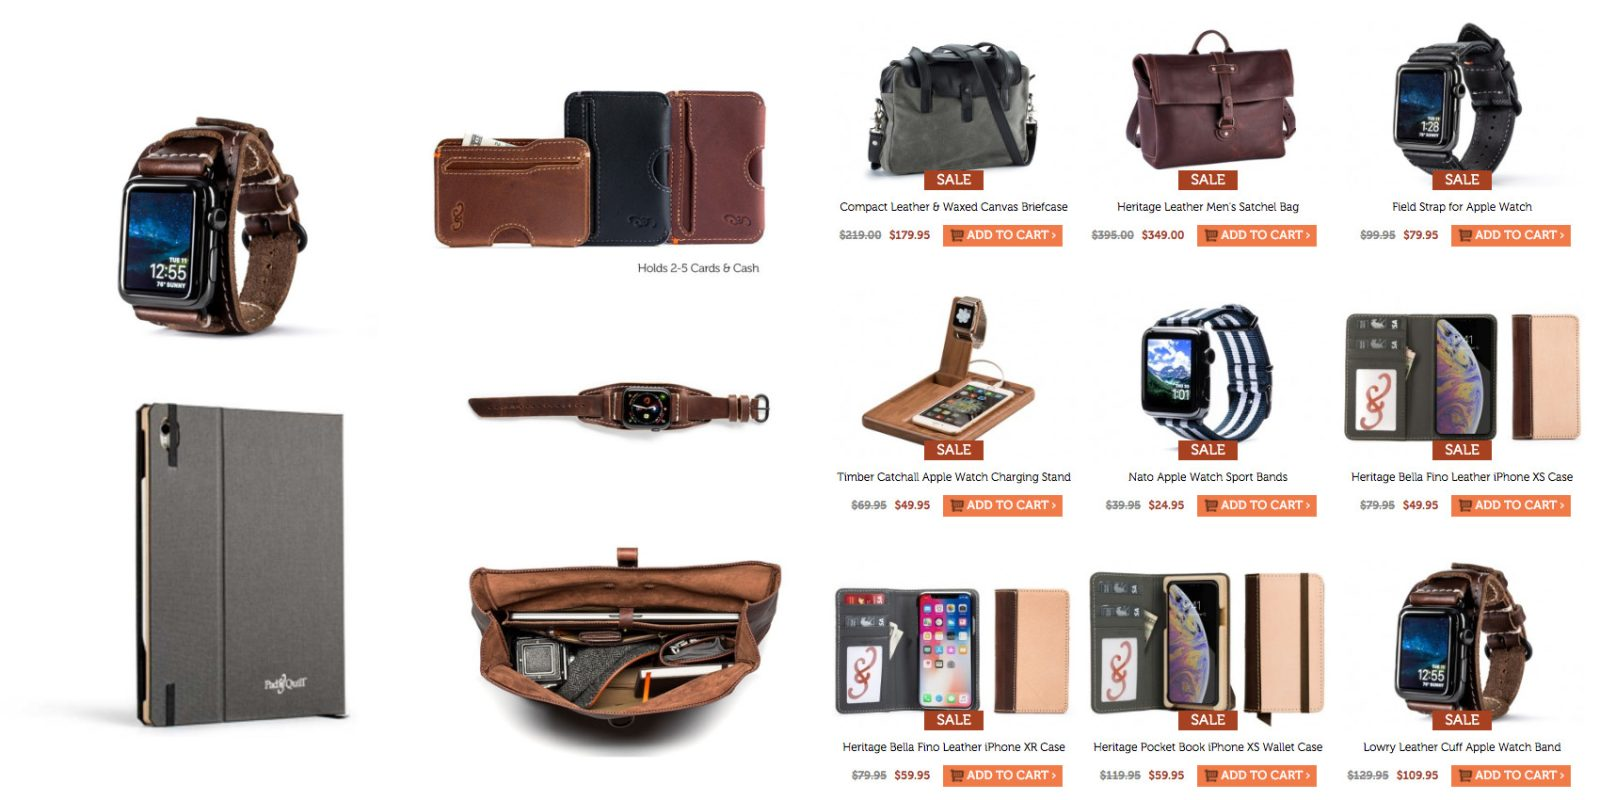 8b56b9a0241ae6 Pad & Quill Apple gear accessories up to 30% off: Watch bands, bags, iPad  cases, more